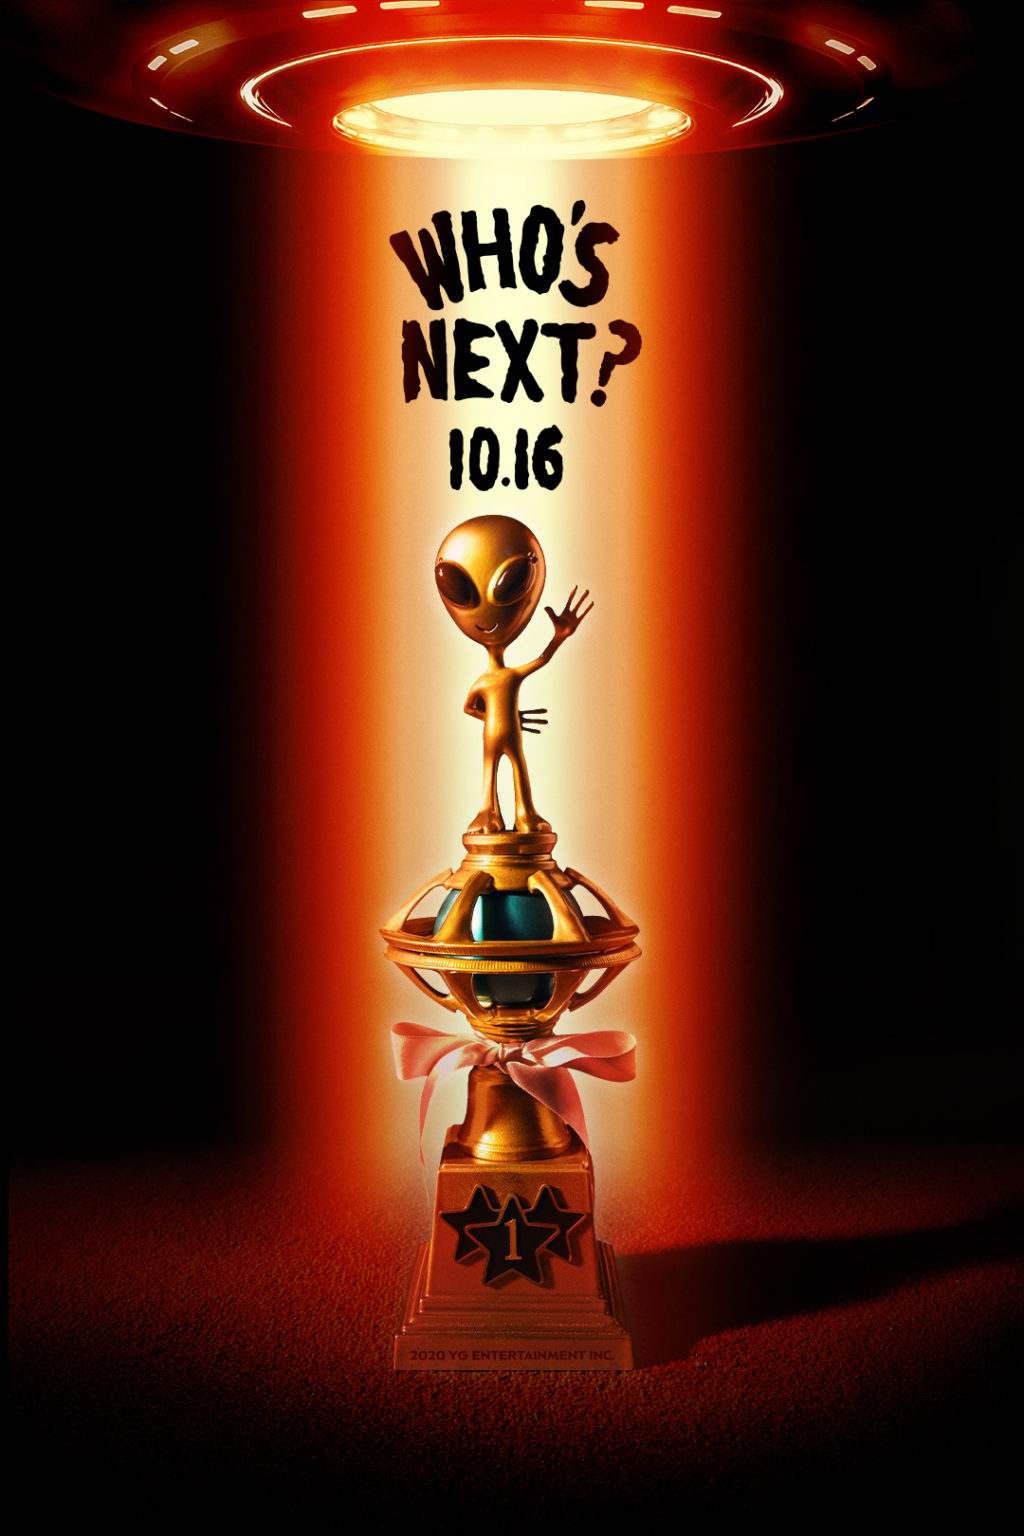 """YG Entertainment Released a """"WHO's NEXT?"""" Poster for The Next Artist Comeback"""